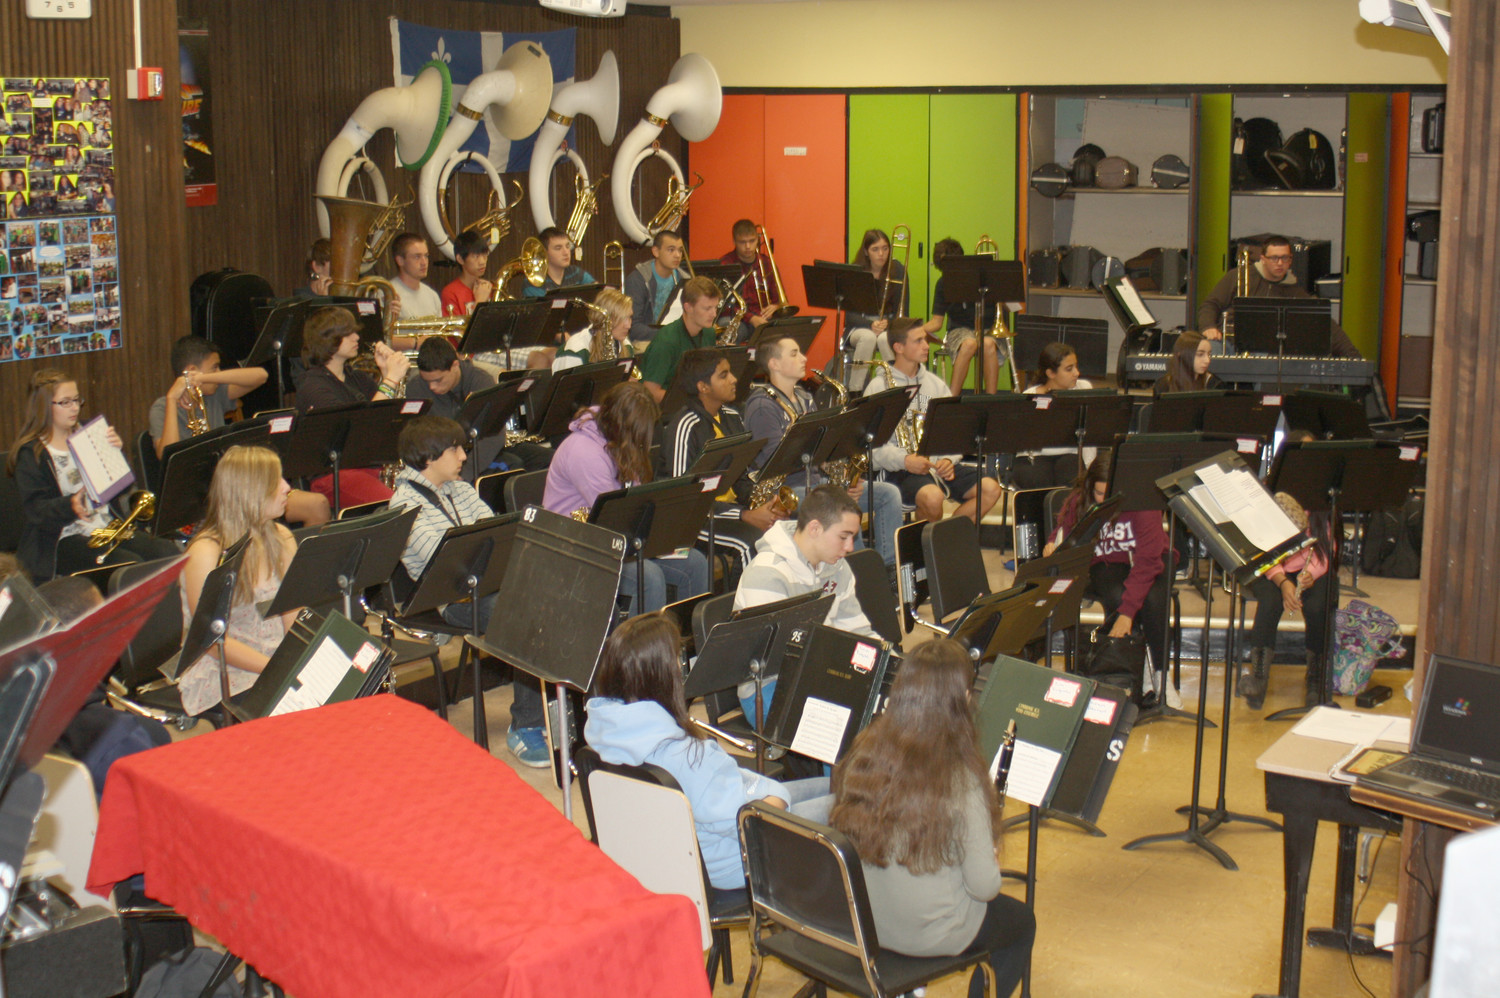 For seven periods every day, students at Lynbrook High School cram into the undersized band room. If the $28.9 million bond proposal is approved Tuesday, new rooms will be built for the band, orchestra and chorus.